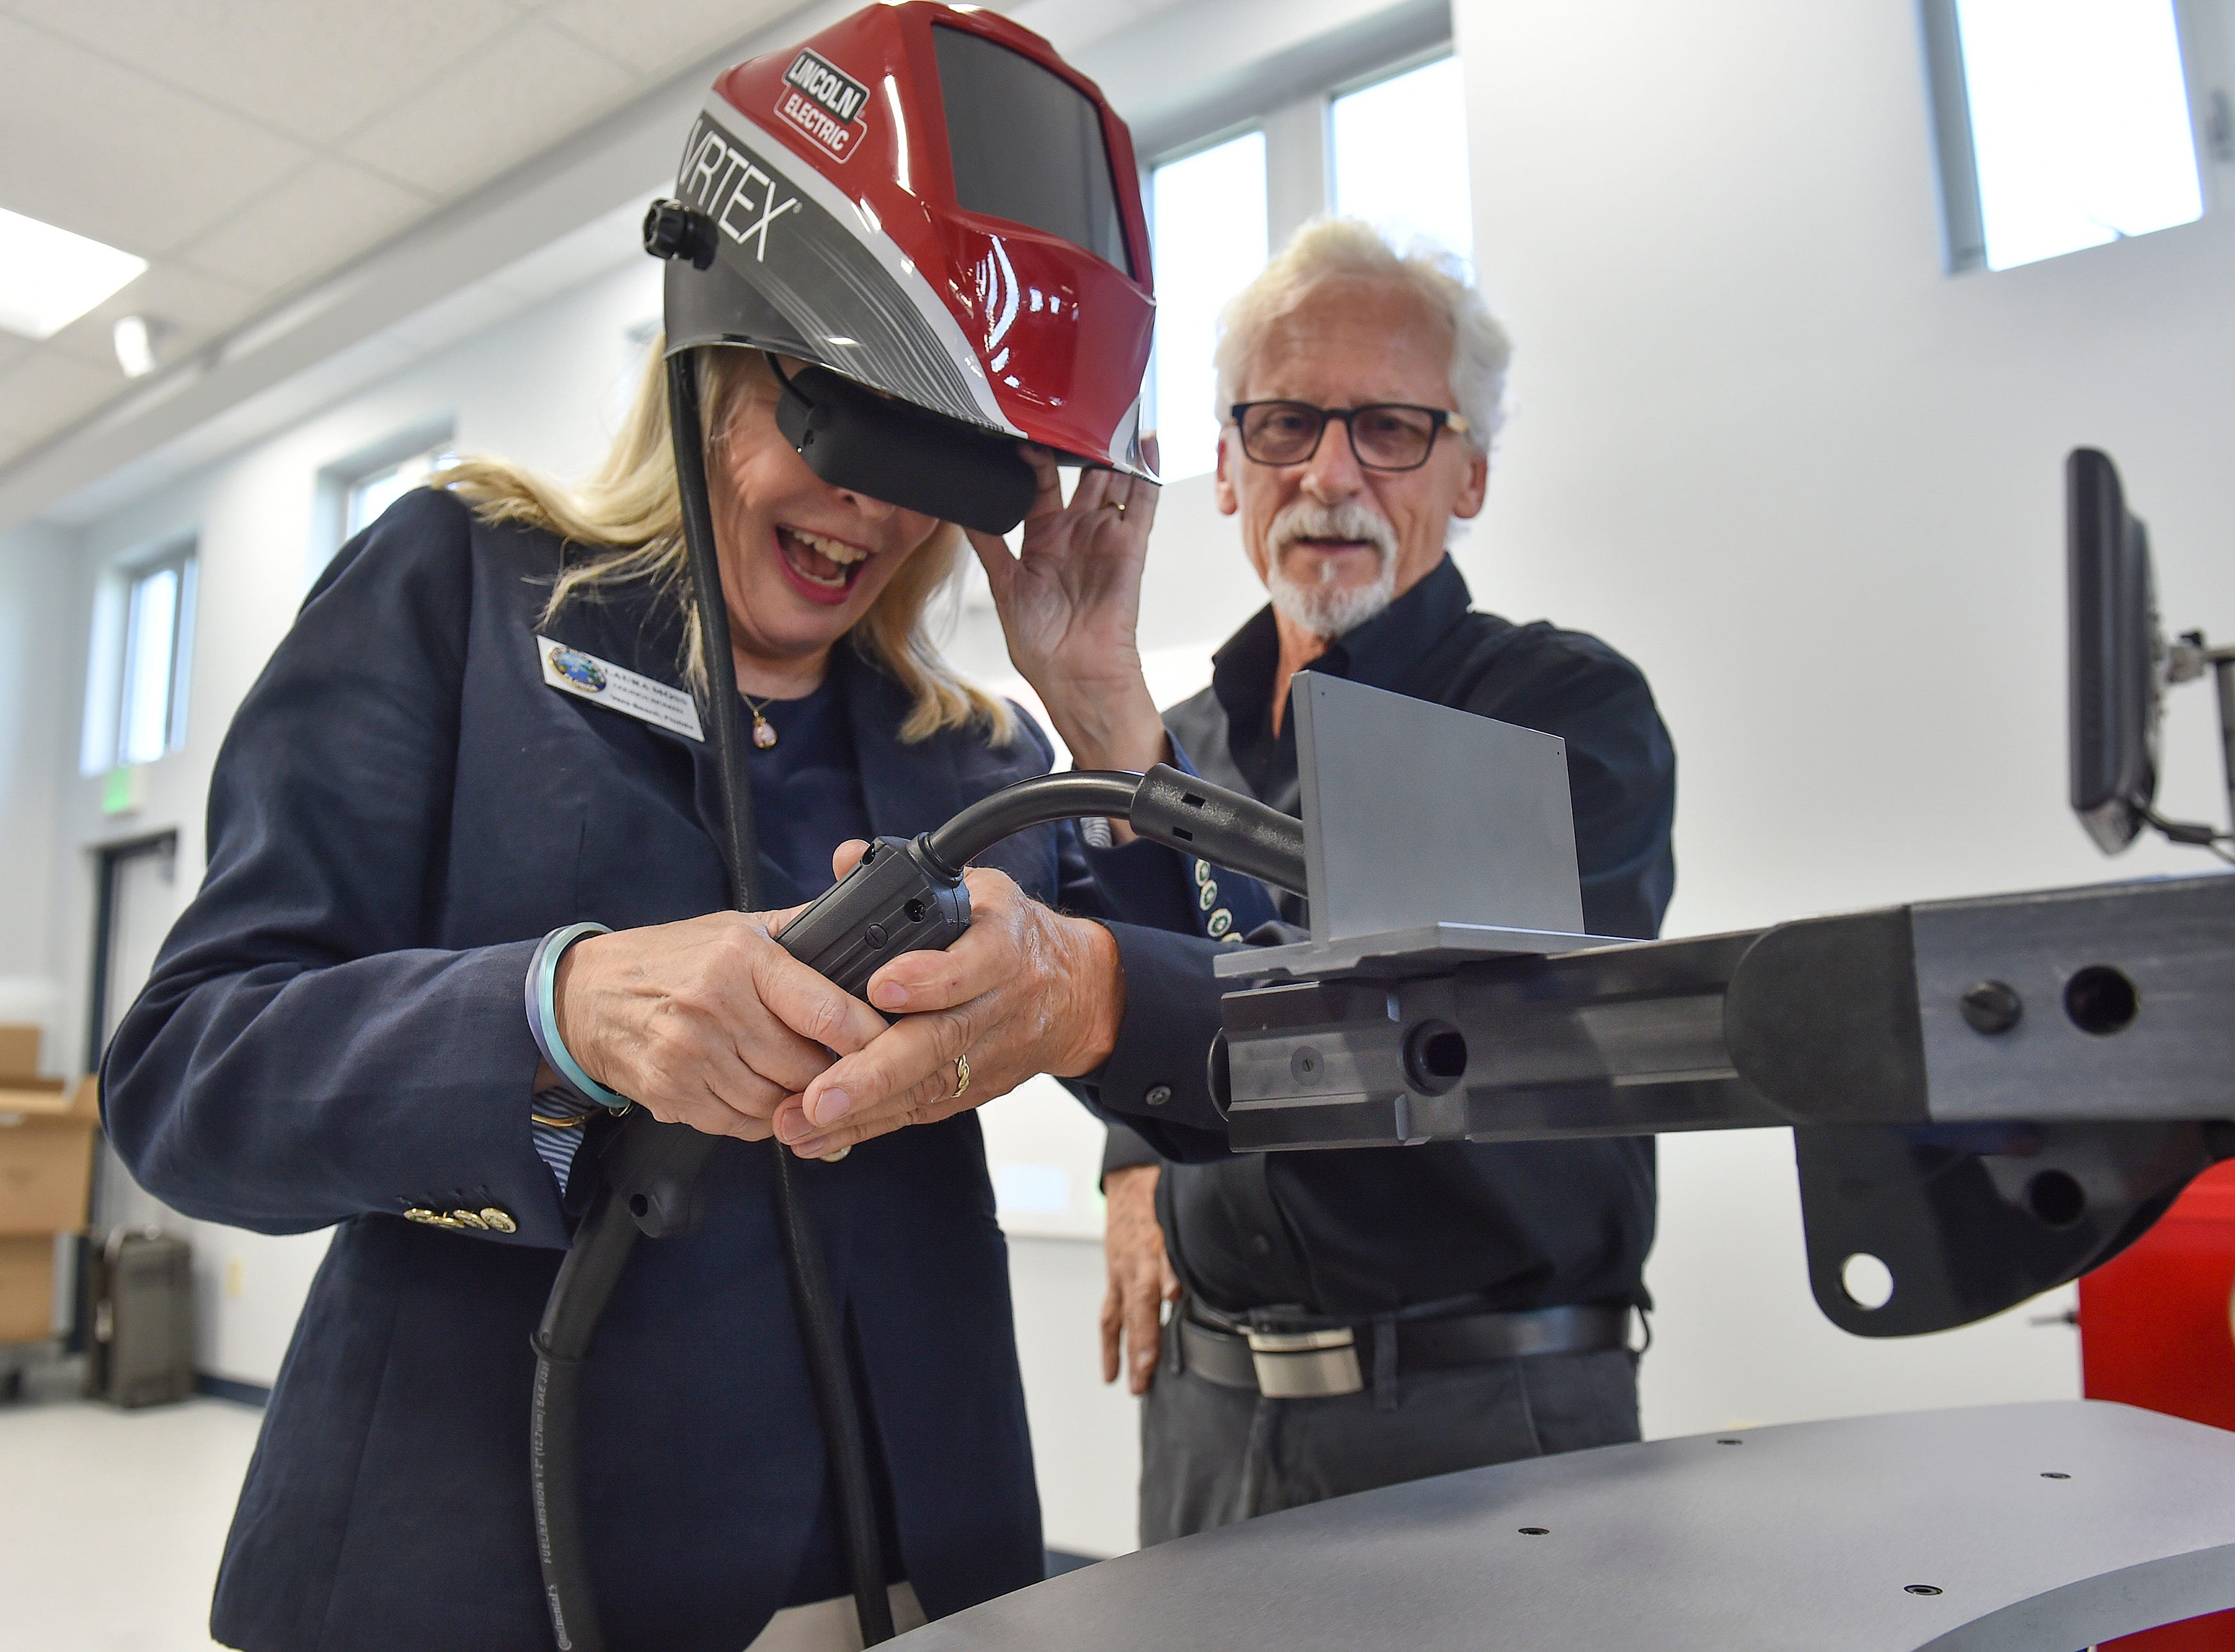 """Laura Moss, councilwoman with the City of Vero Beach, tries out a virtual reality welding trainer with the help of Michael Klee, representative for Lincoln Electric of Cleveland, Ohio, while touring the campus of Treasure Coast Technical College during the school's ribbon cutting ceremony Thursday, August, 9, 2018, in Indian River County. """"I really did it, isn't that great,"""" Moss said afterword. """"I am so impressed with this facility, it really will be a wonderful asset for the community, it was so much fun to try the virtual welding myself."""""""